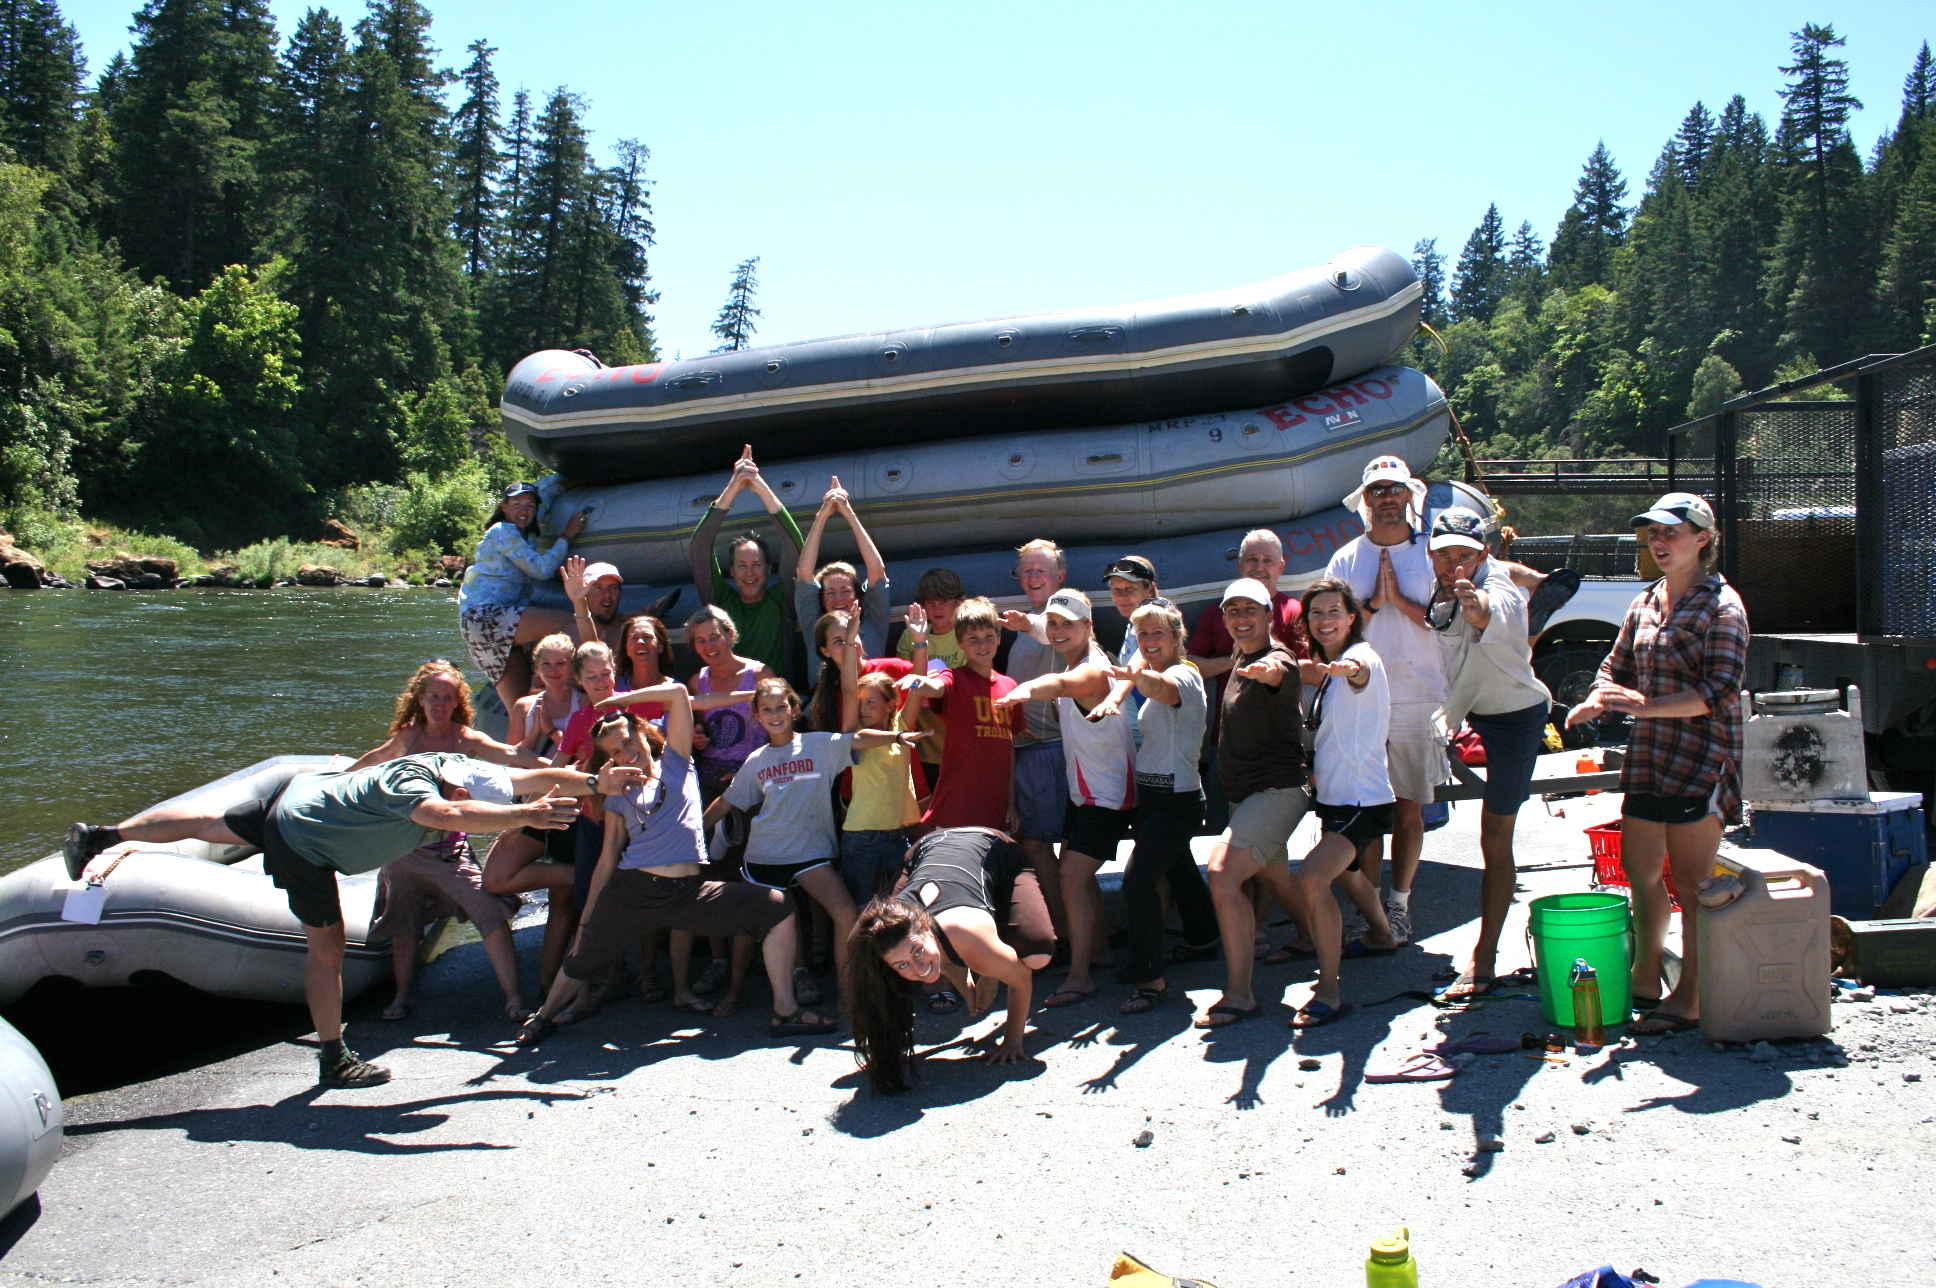 River Rafting - Group Photo